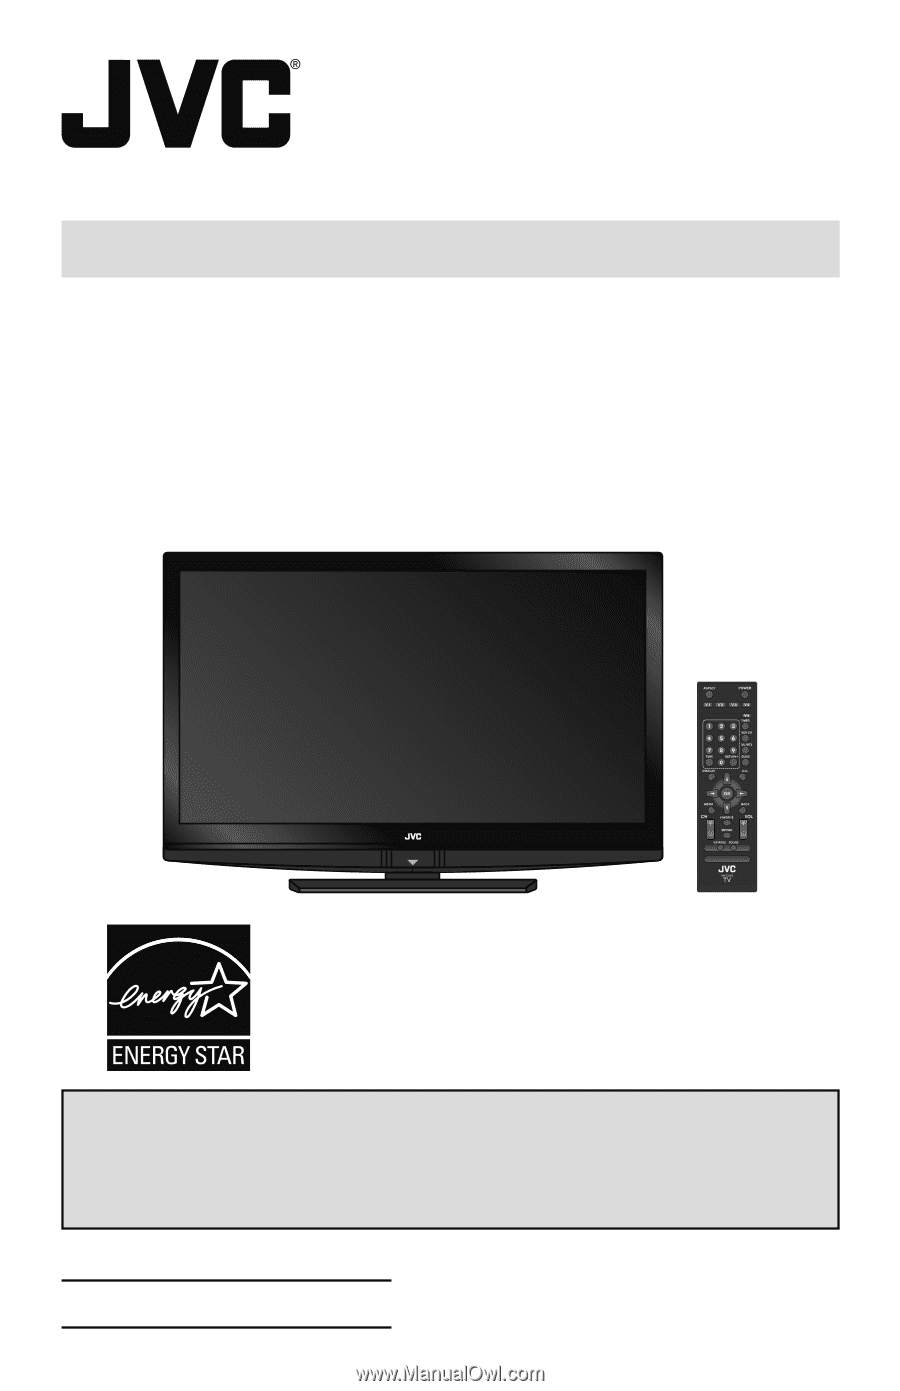 LCT2520-002A-A. 0209TSH-II-IM. LCD Television Users Guide